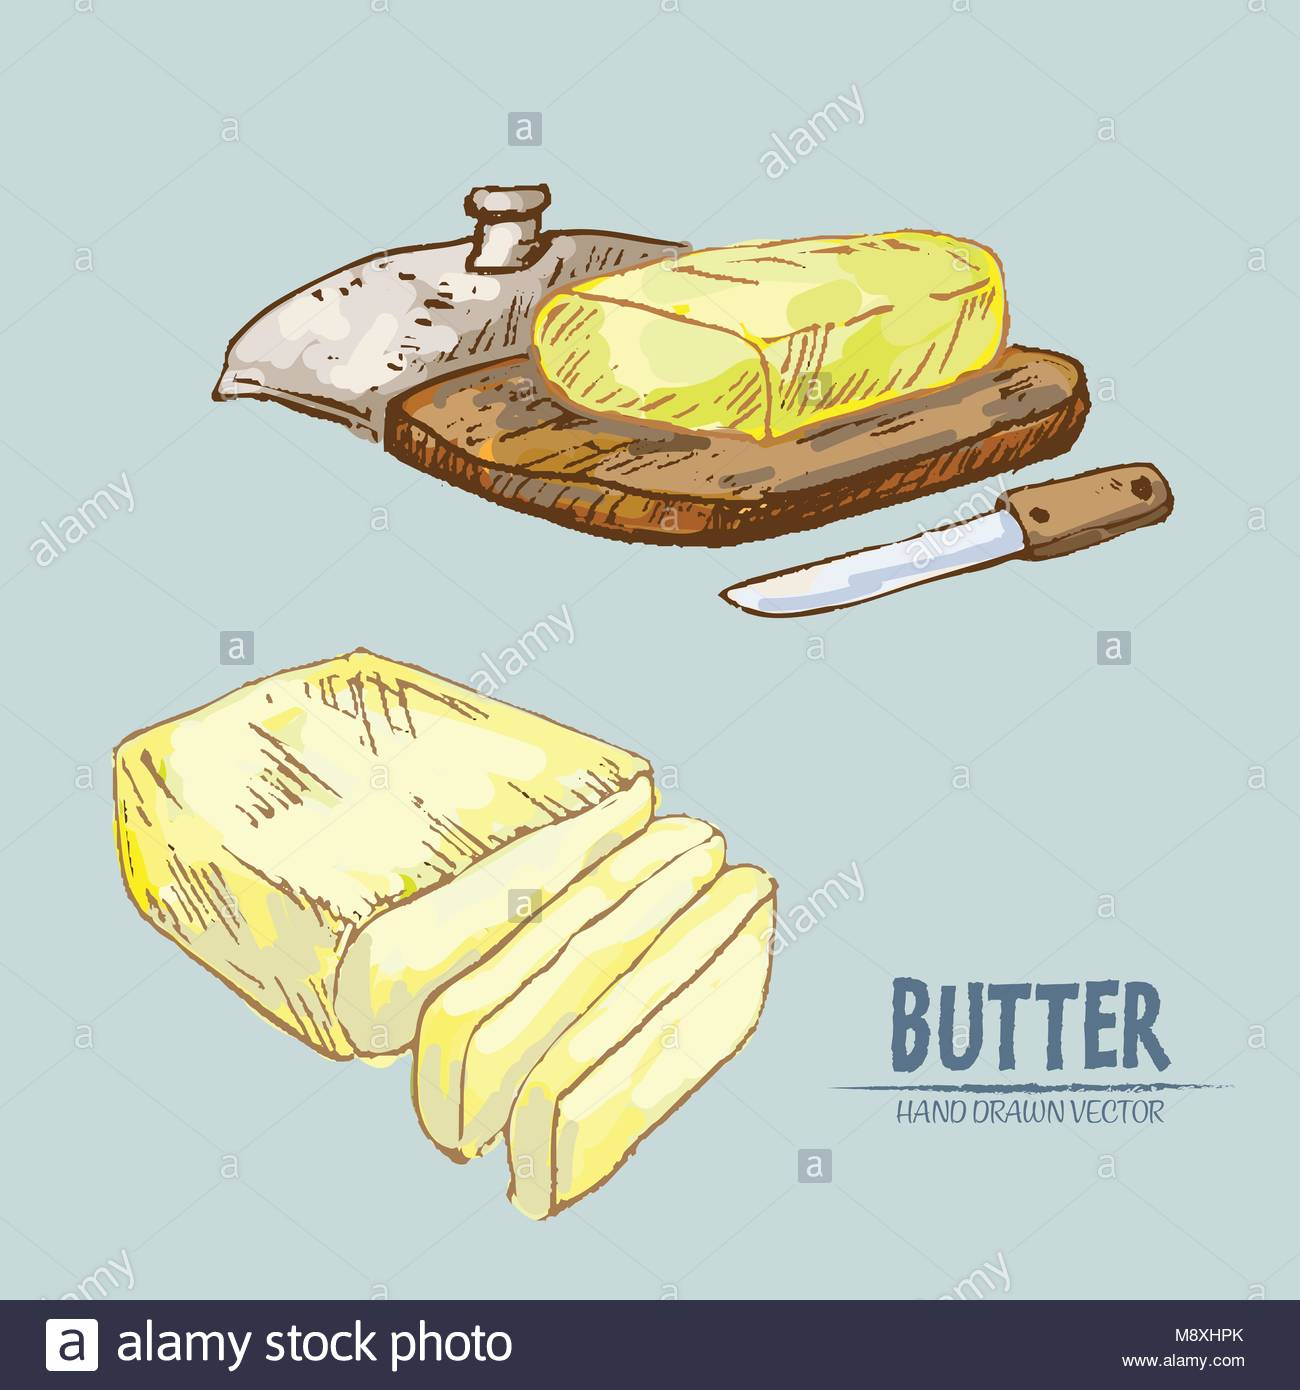 Food Illustration Retro Clip Art Butter Stock Photos & Food.